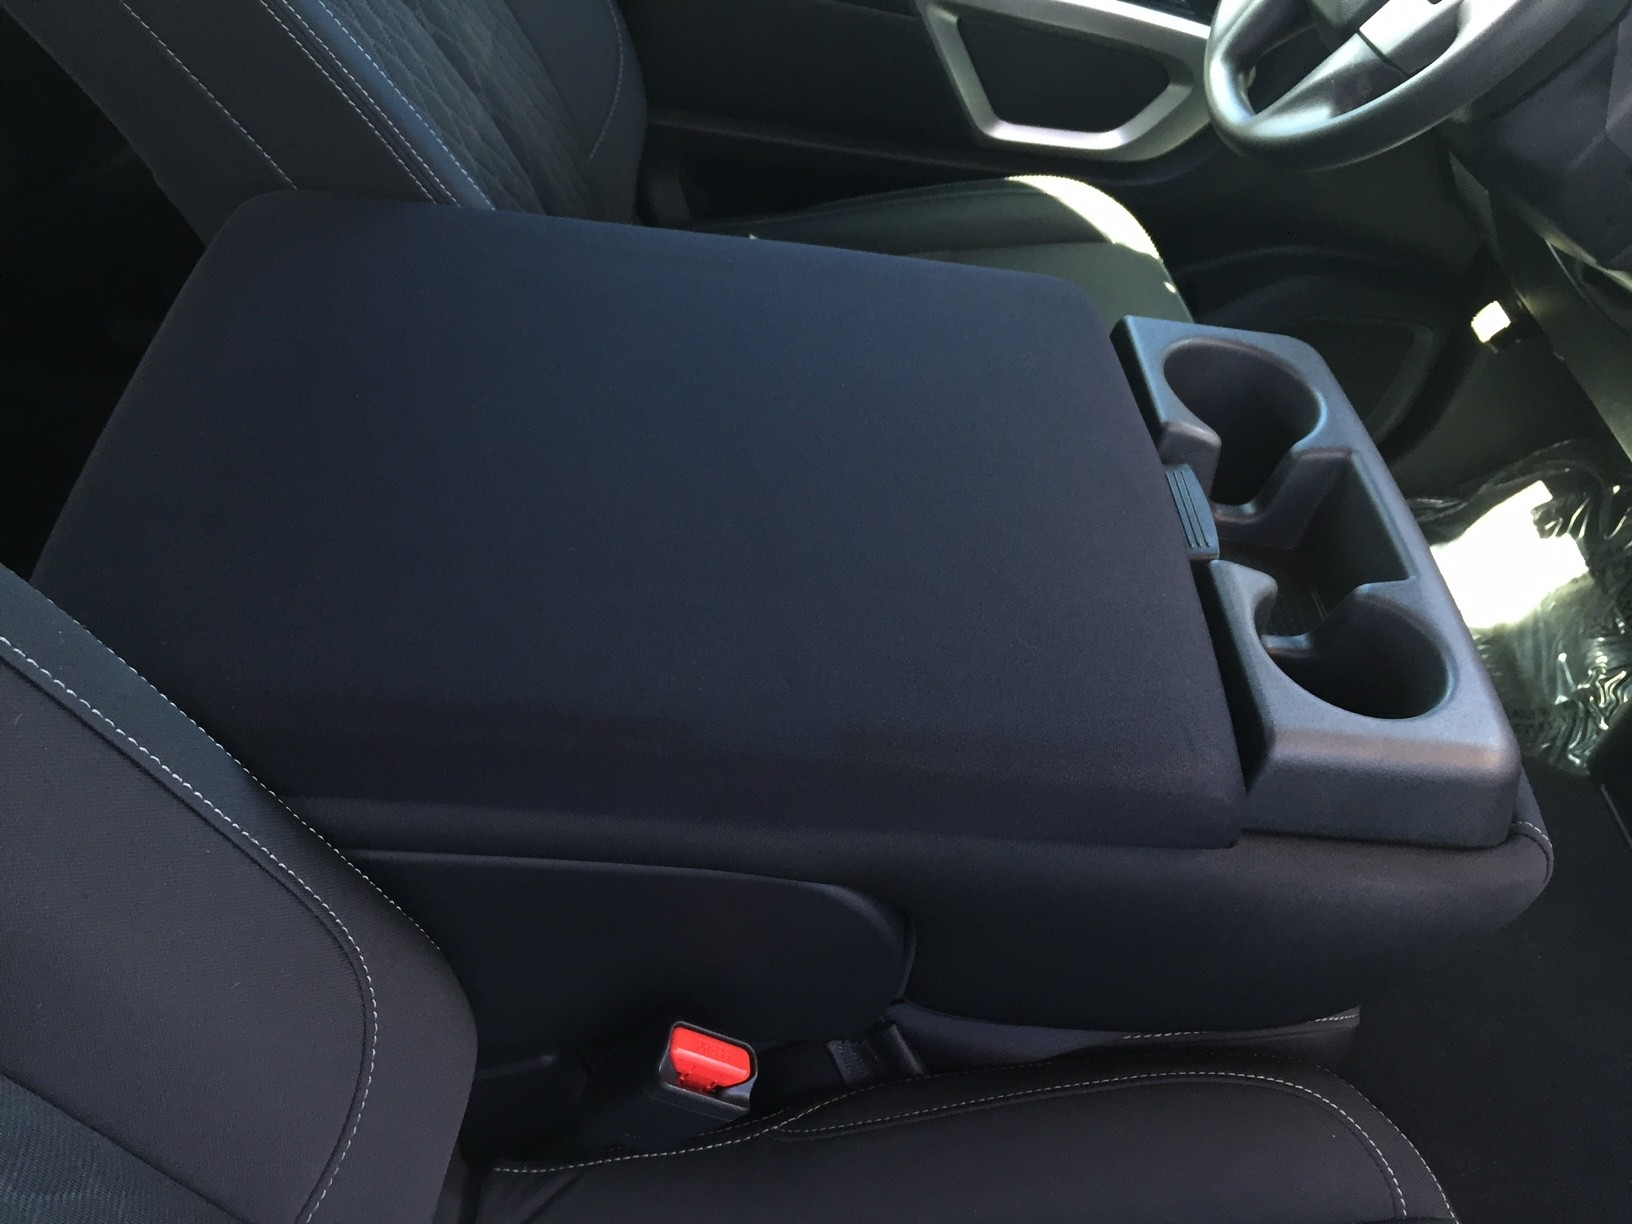 Nissan Titan 2004-12 - (With Third Front Middle Seat)-Neoprene Material